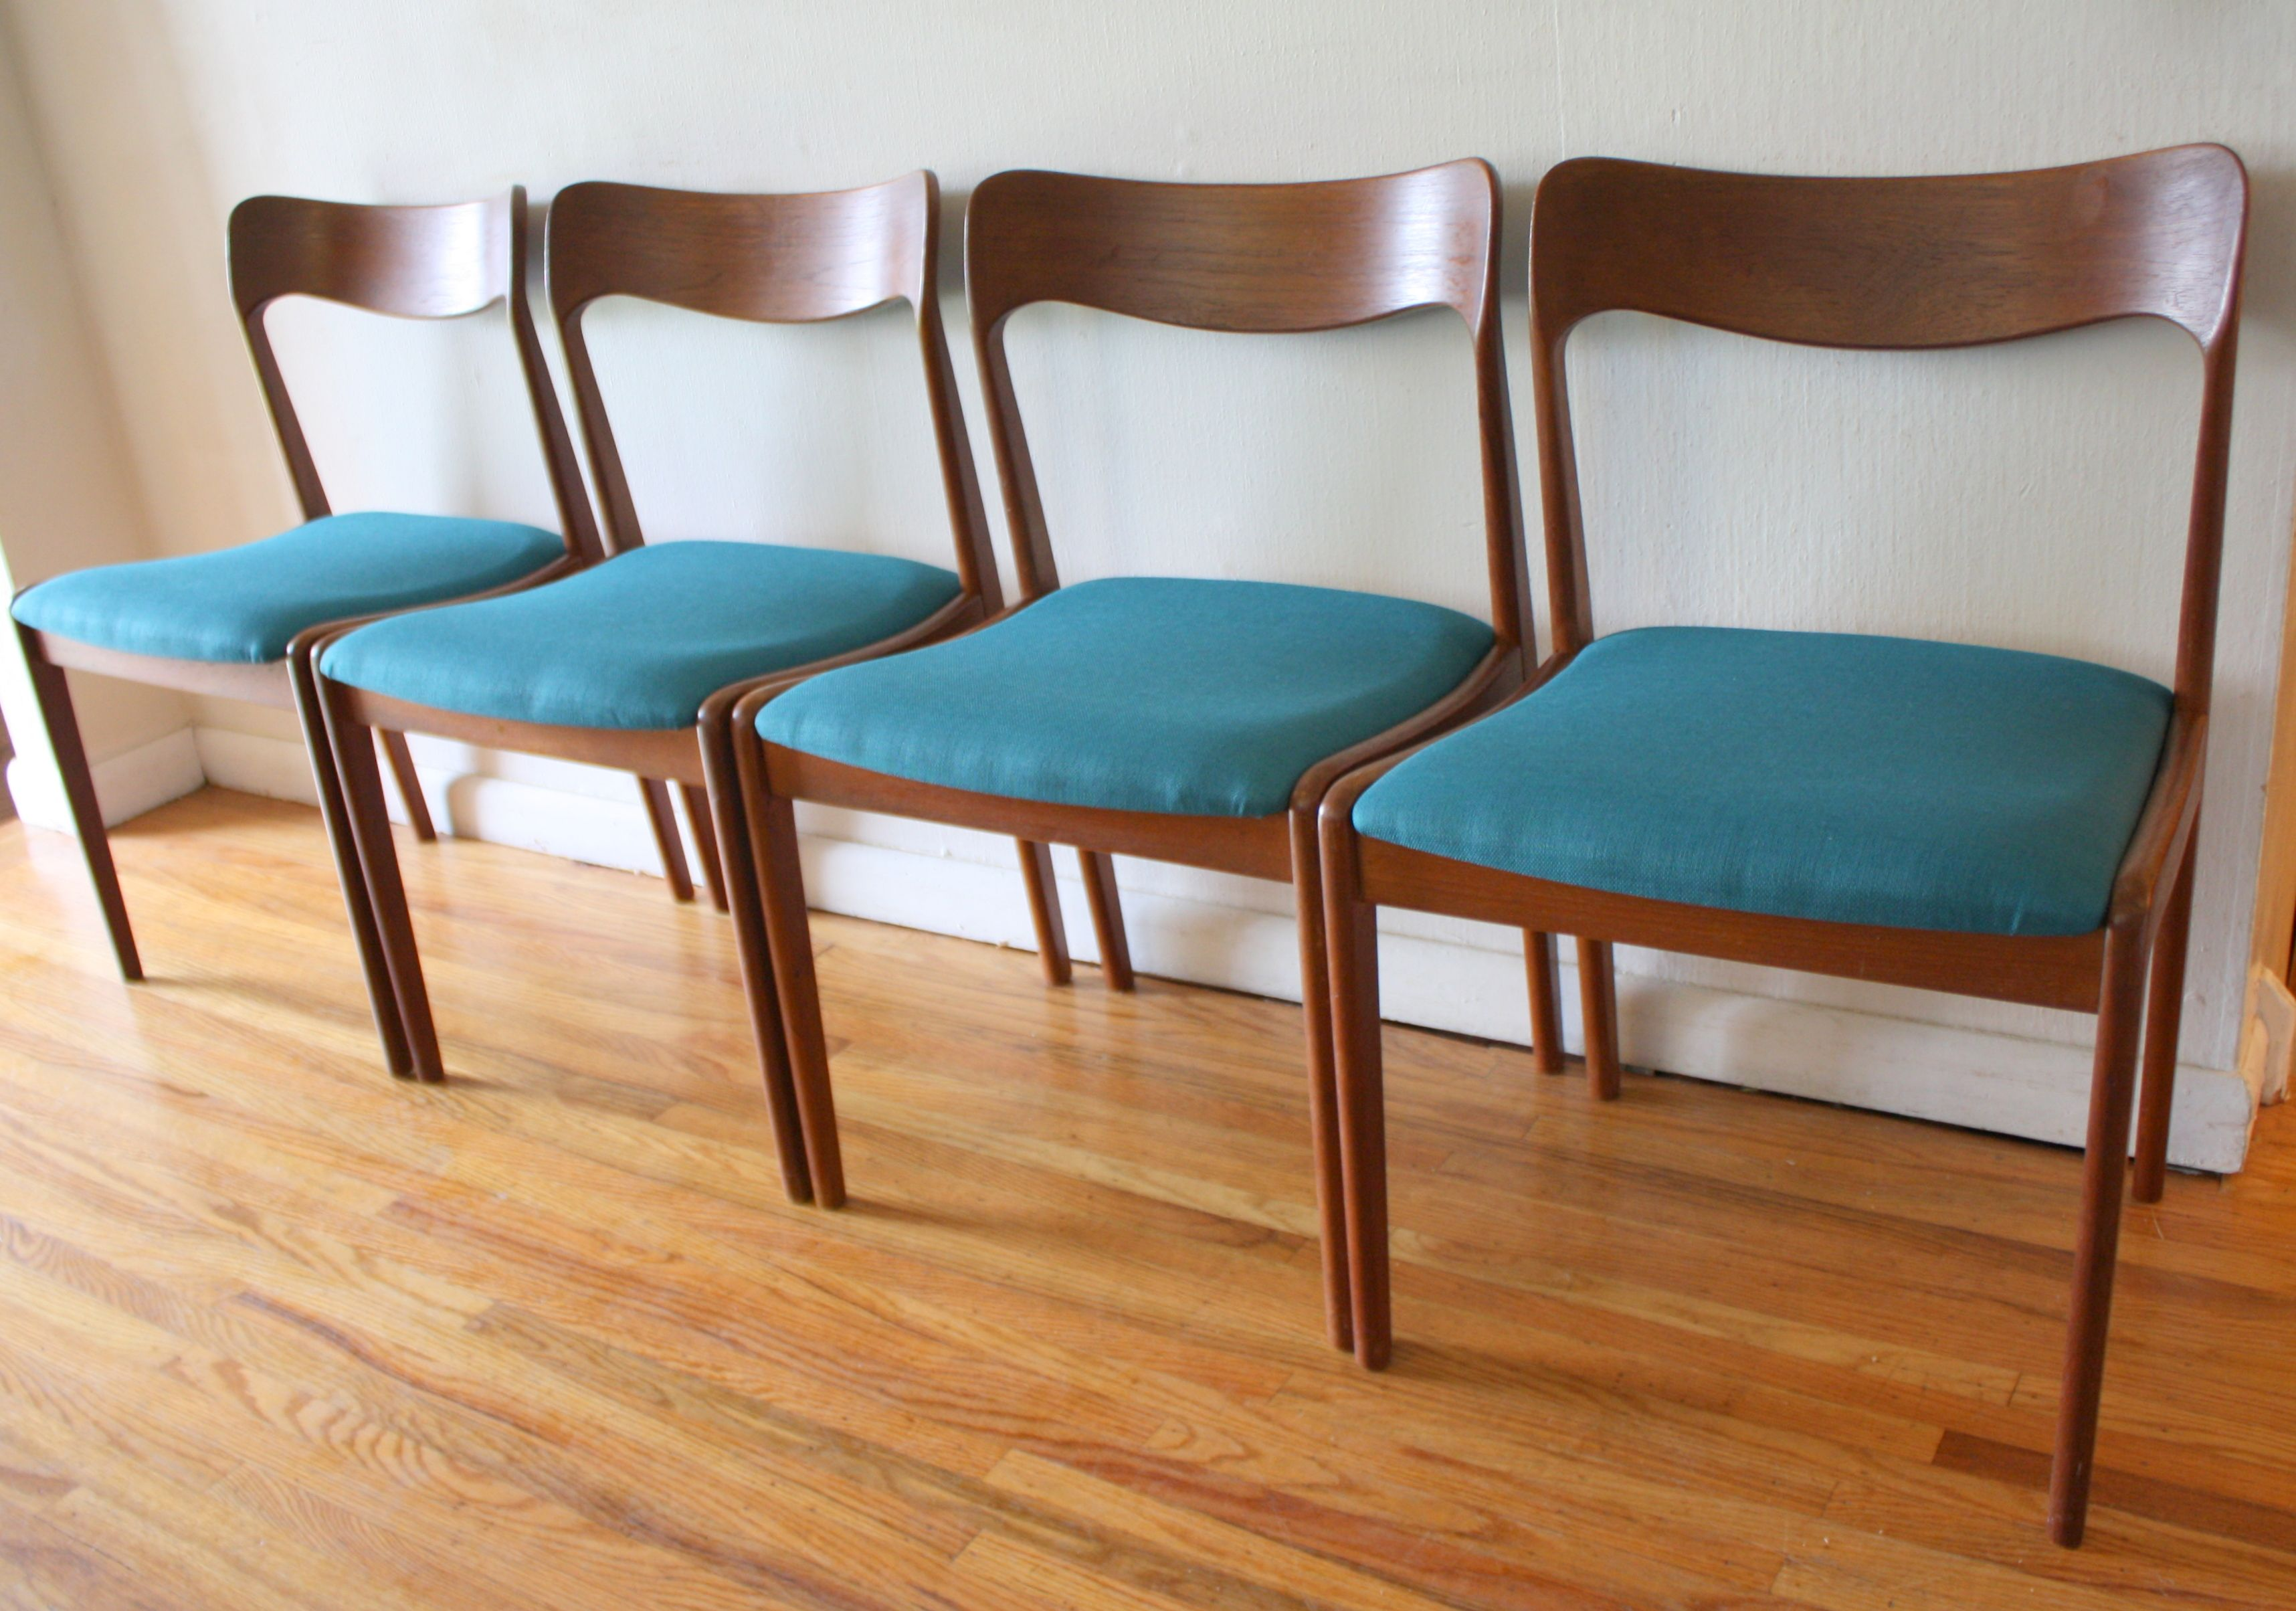 Danish Dining Chair mid century modern danish teak arm chairks mobler, recovered